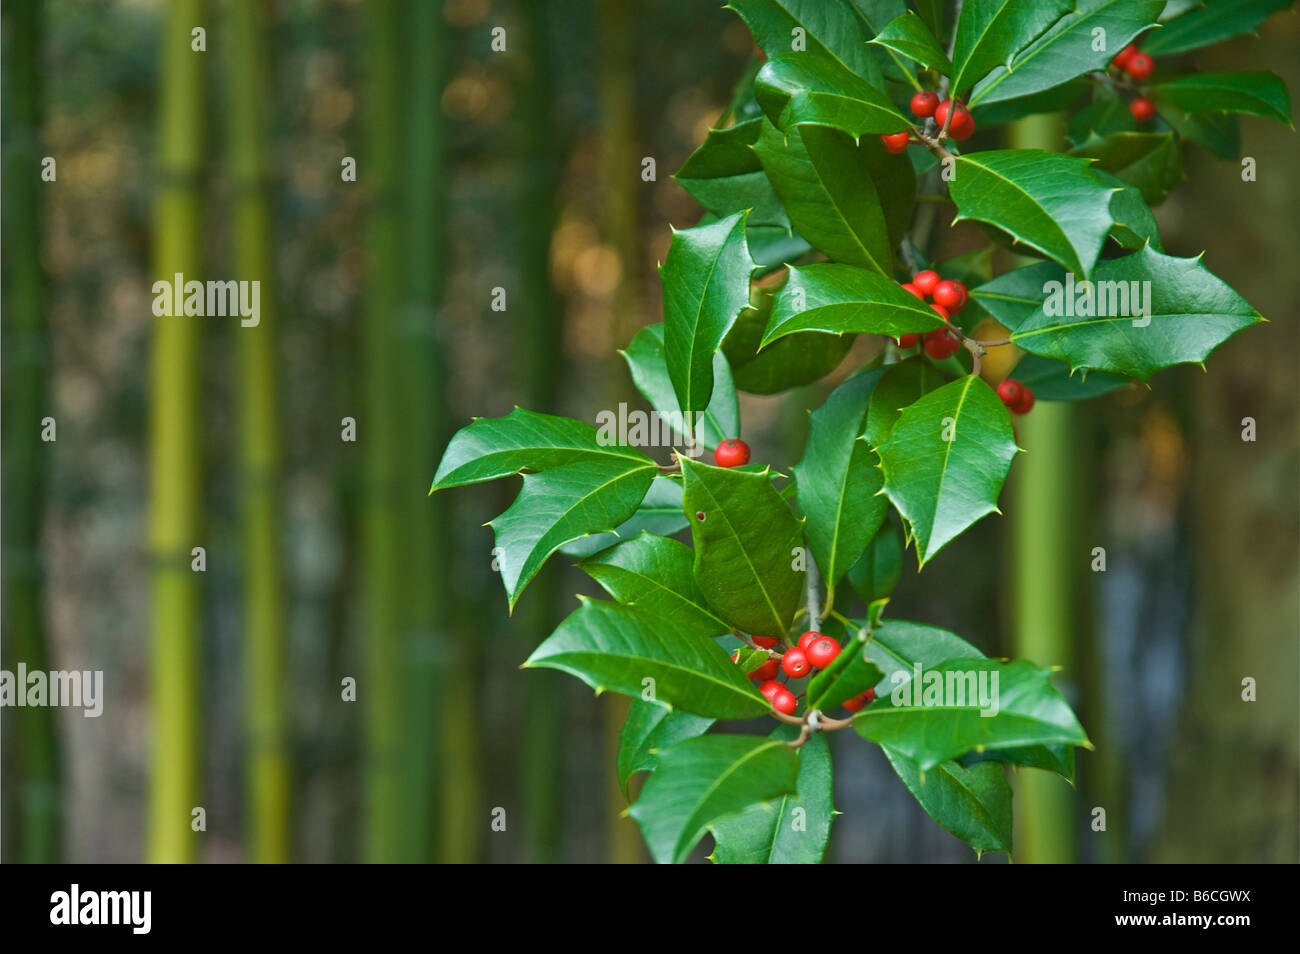 Christmas Holly Tree Part - 49: Close Up Christmas Green Holly Leaves And Red Berries Close Up On Holly Tree  Ilex Sp